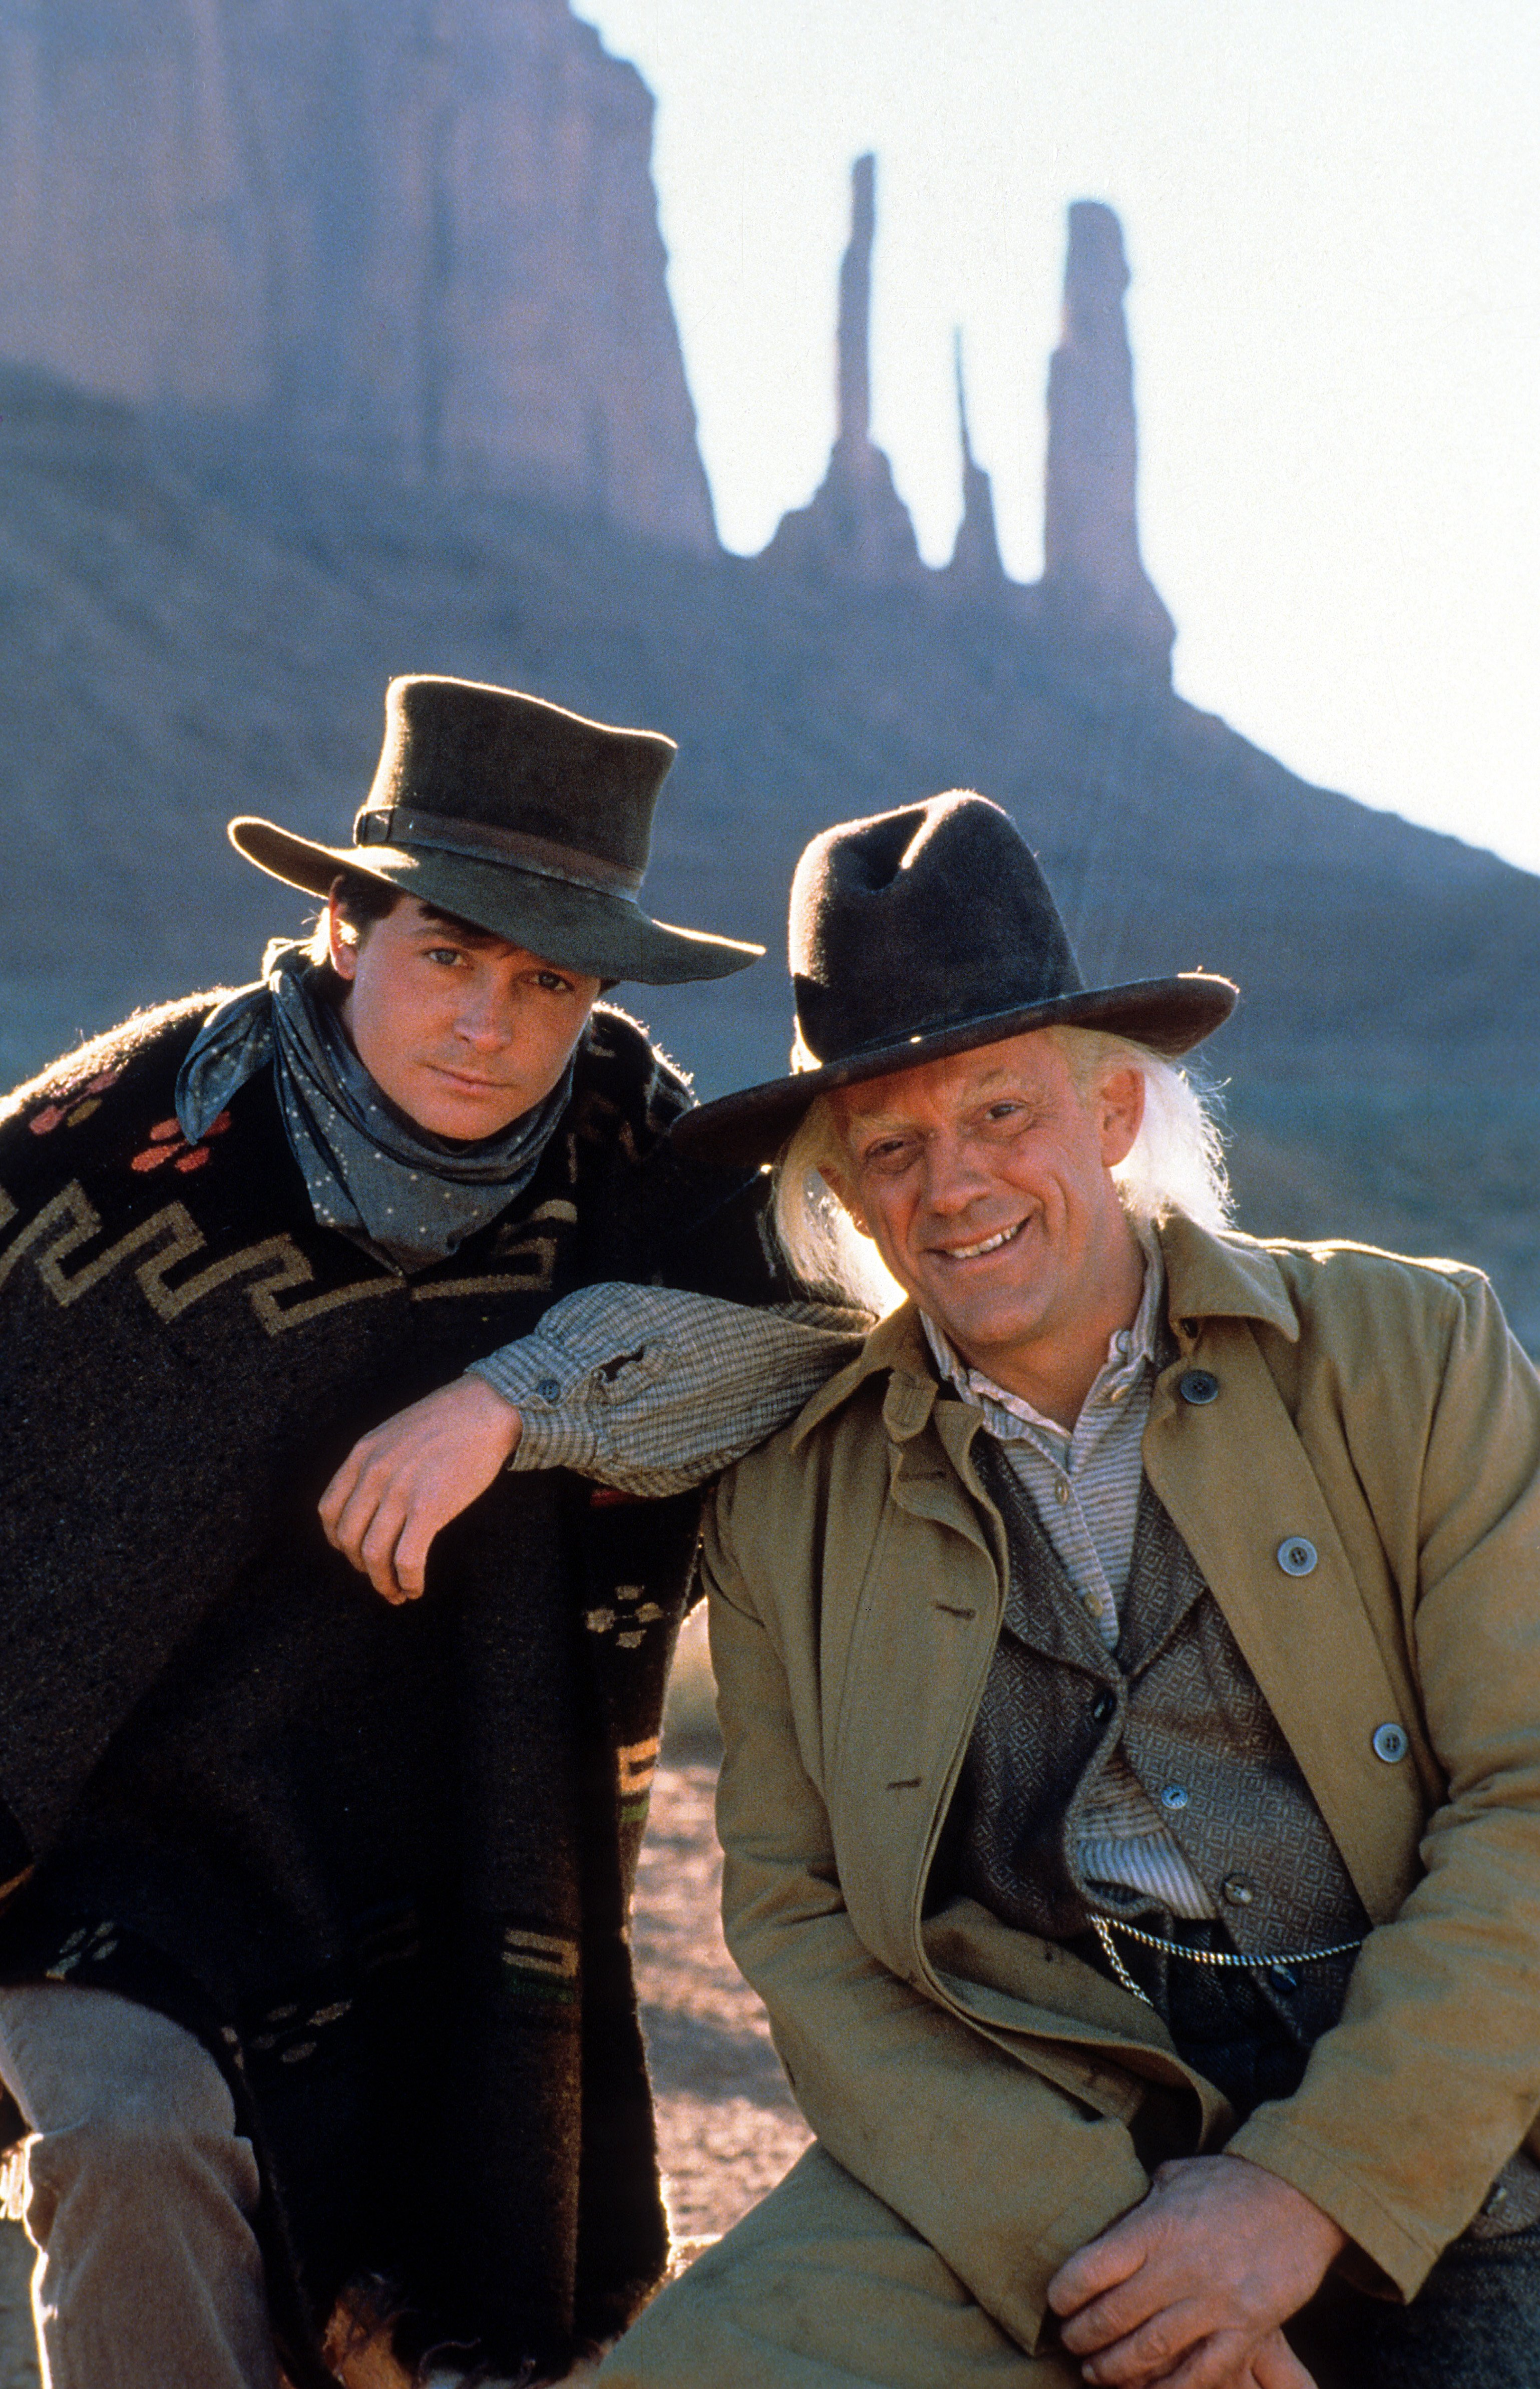 Michael J. Fox and Christopher Lloyd in a scene from the film 'Back to the Future Part III', 1990.   Source: Getty Images